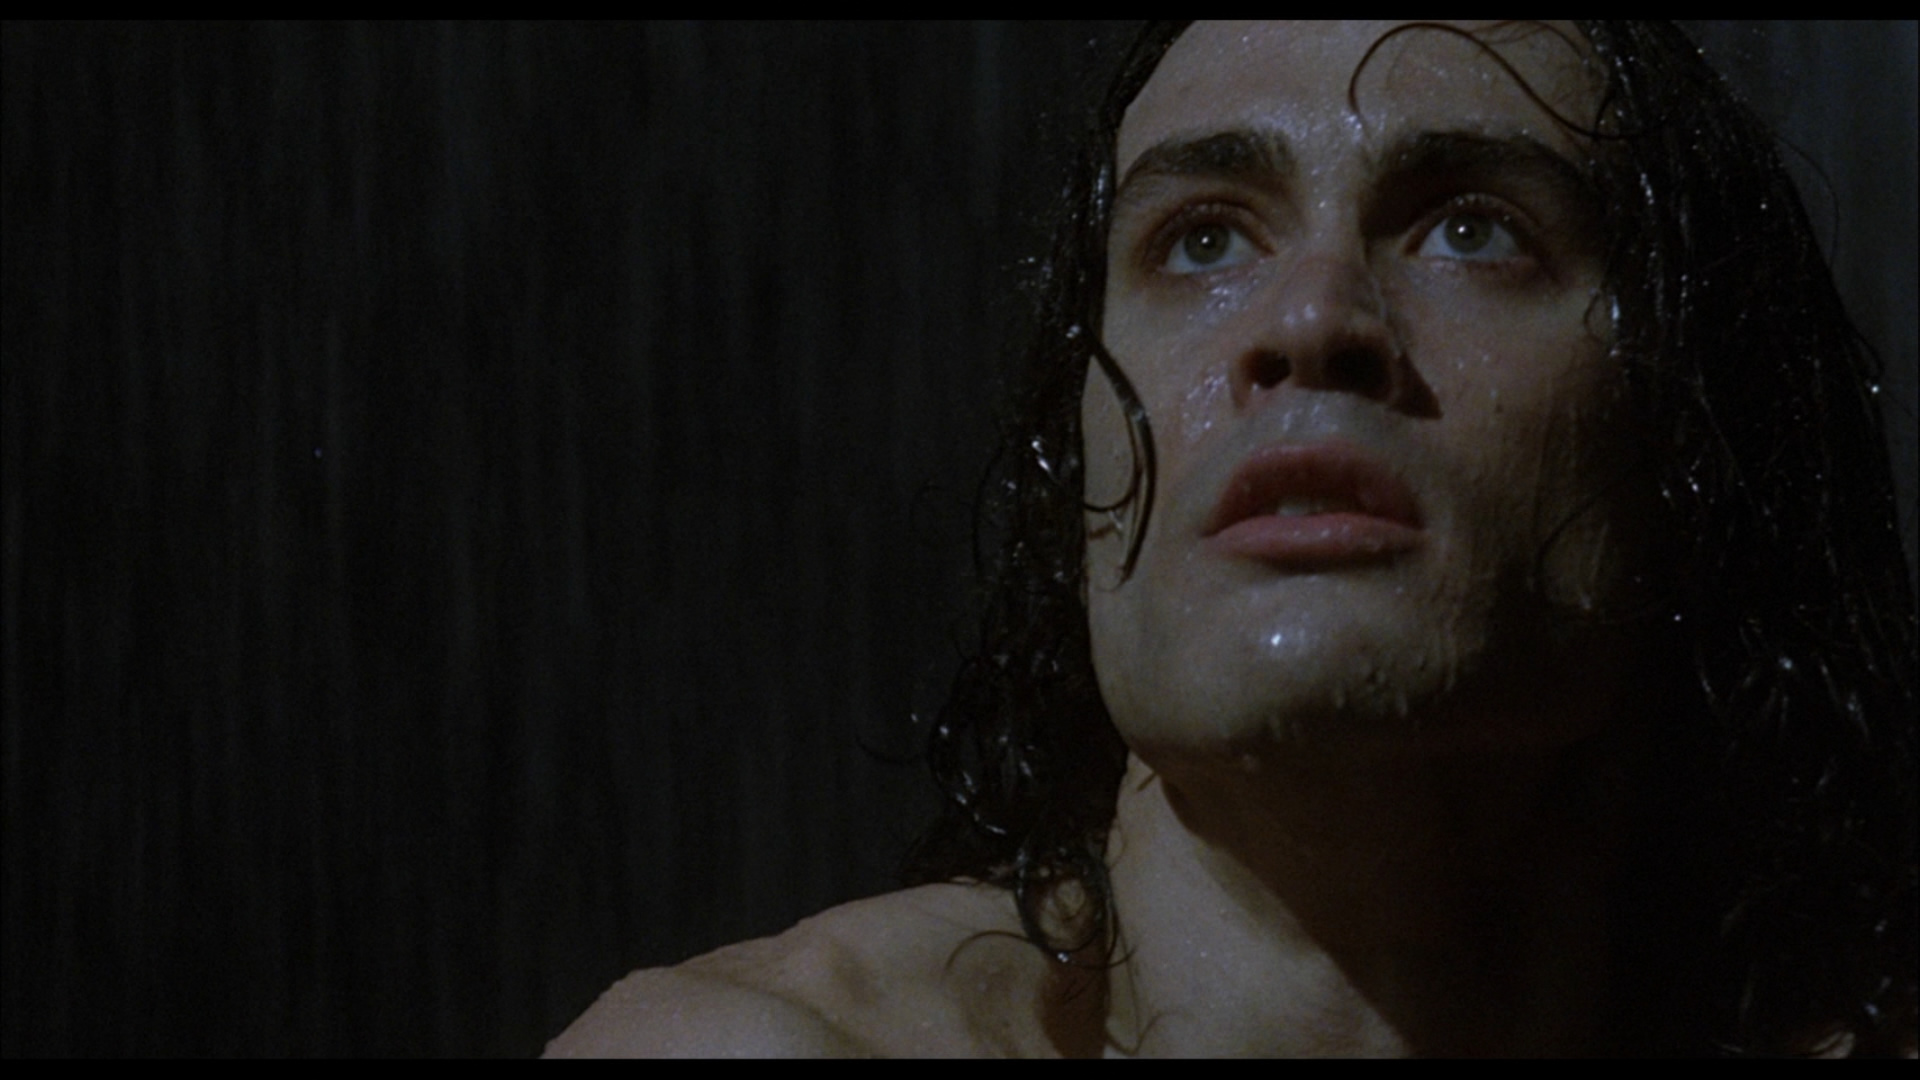 Brandon Lee in Il Corvo crow cult stories cinema mistero mafia triade omicidio leggenda morte